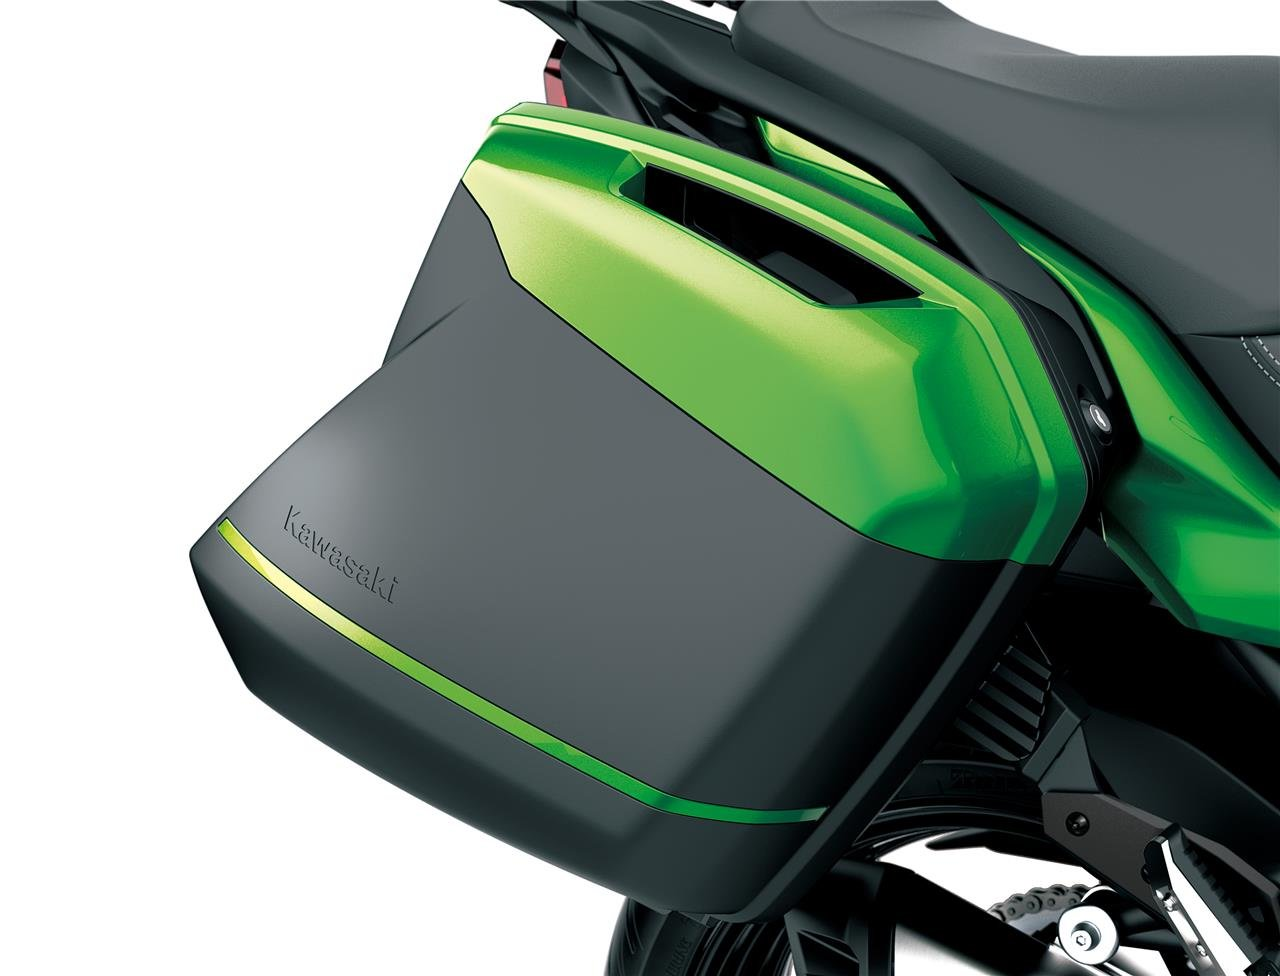 New 2019 Kawasaki Versys 1000 SE GT£1500 Paid,Free Delivery  For Sale (picture 3 of 6)